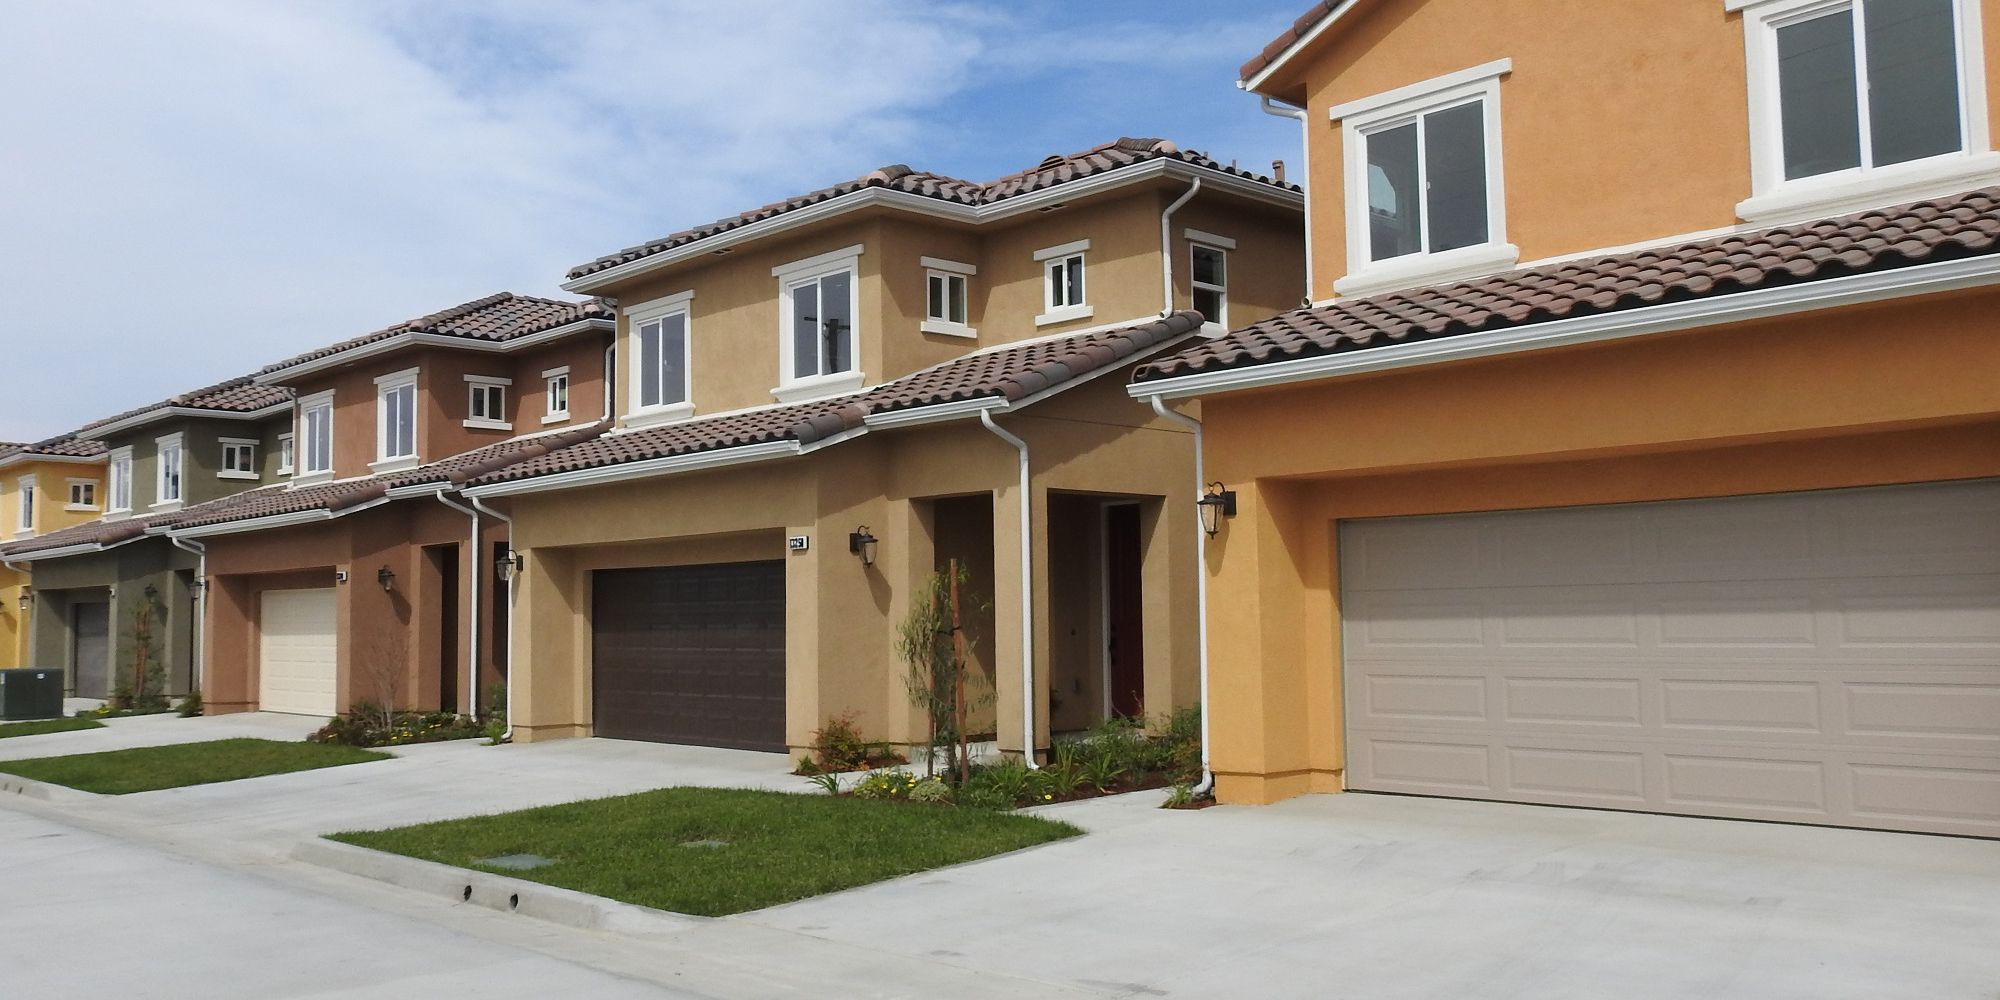 Homes In Sunny Sage Homes By Sunny Sage Homes. Sunny Sage Homes In Garden  Grove ...